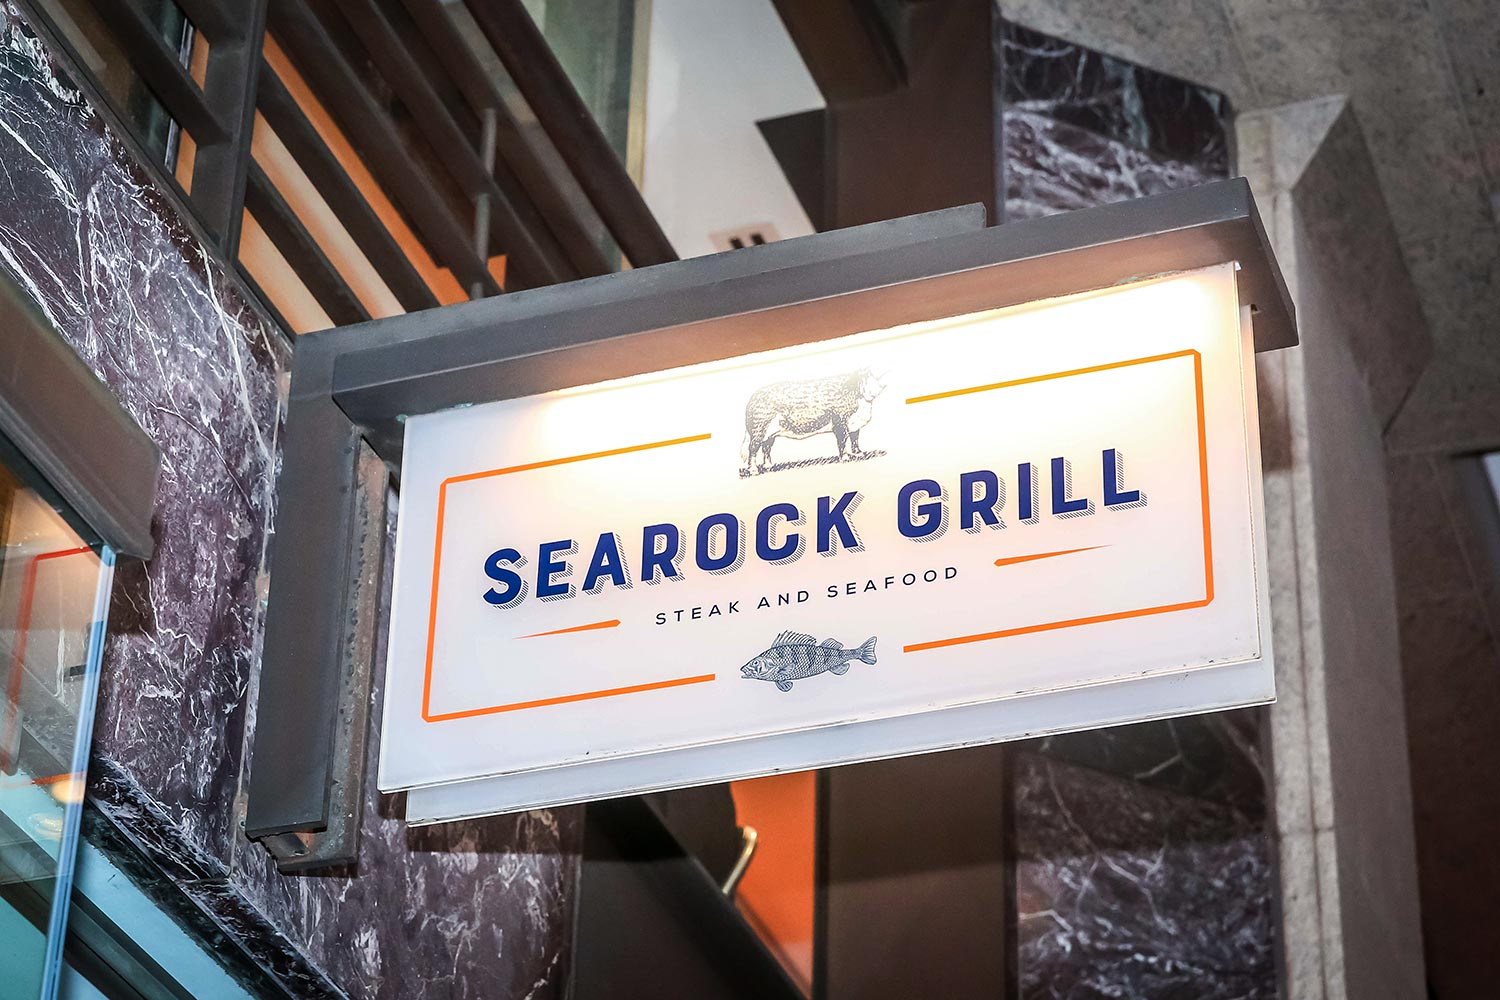 Searock Grill exterior sign